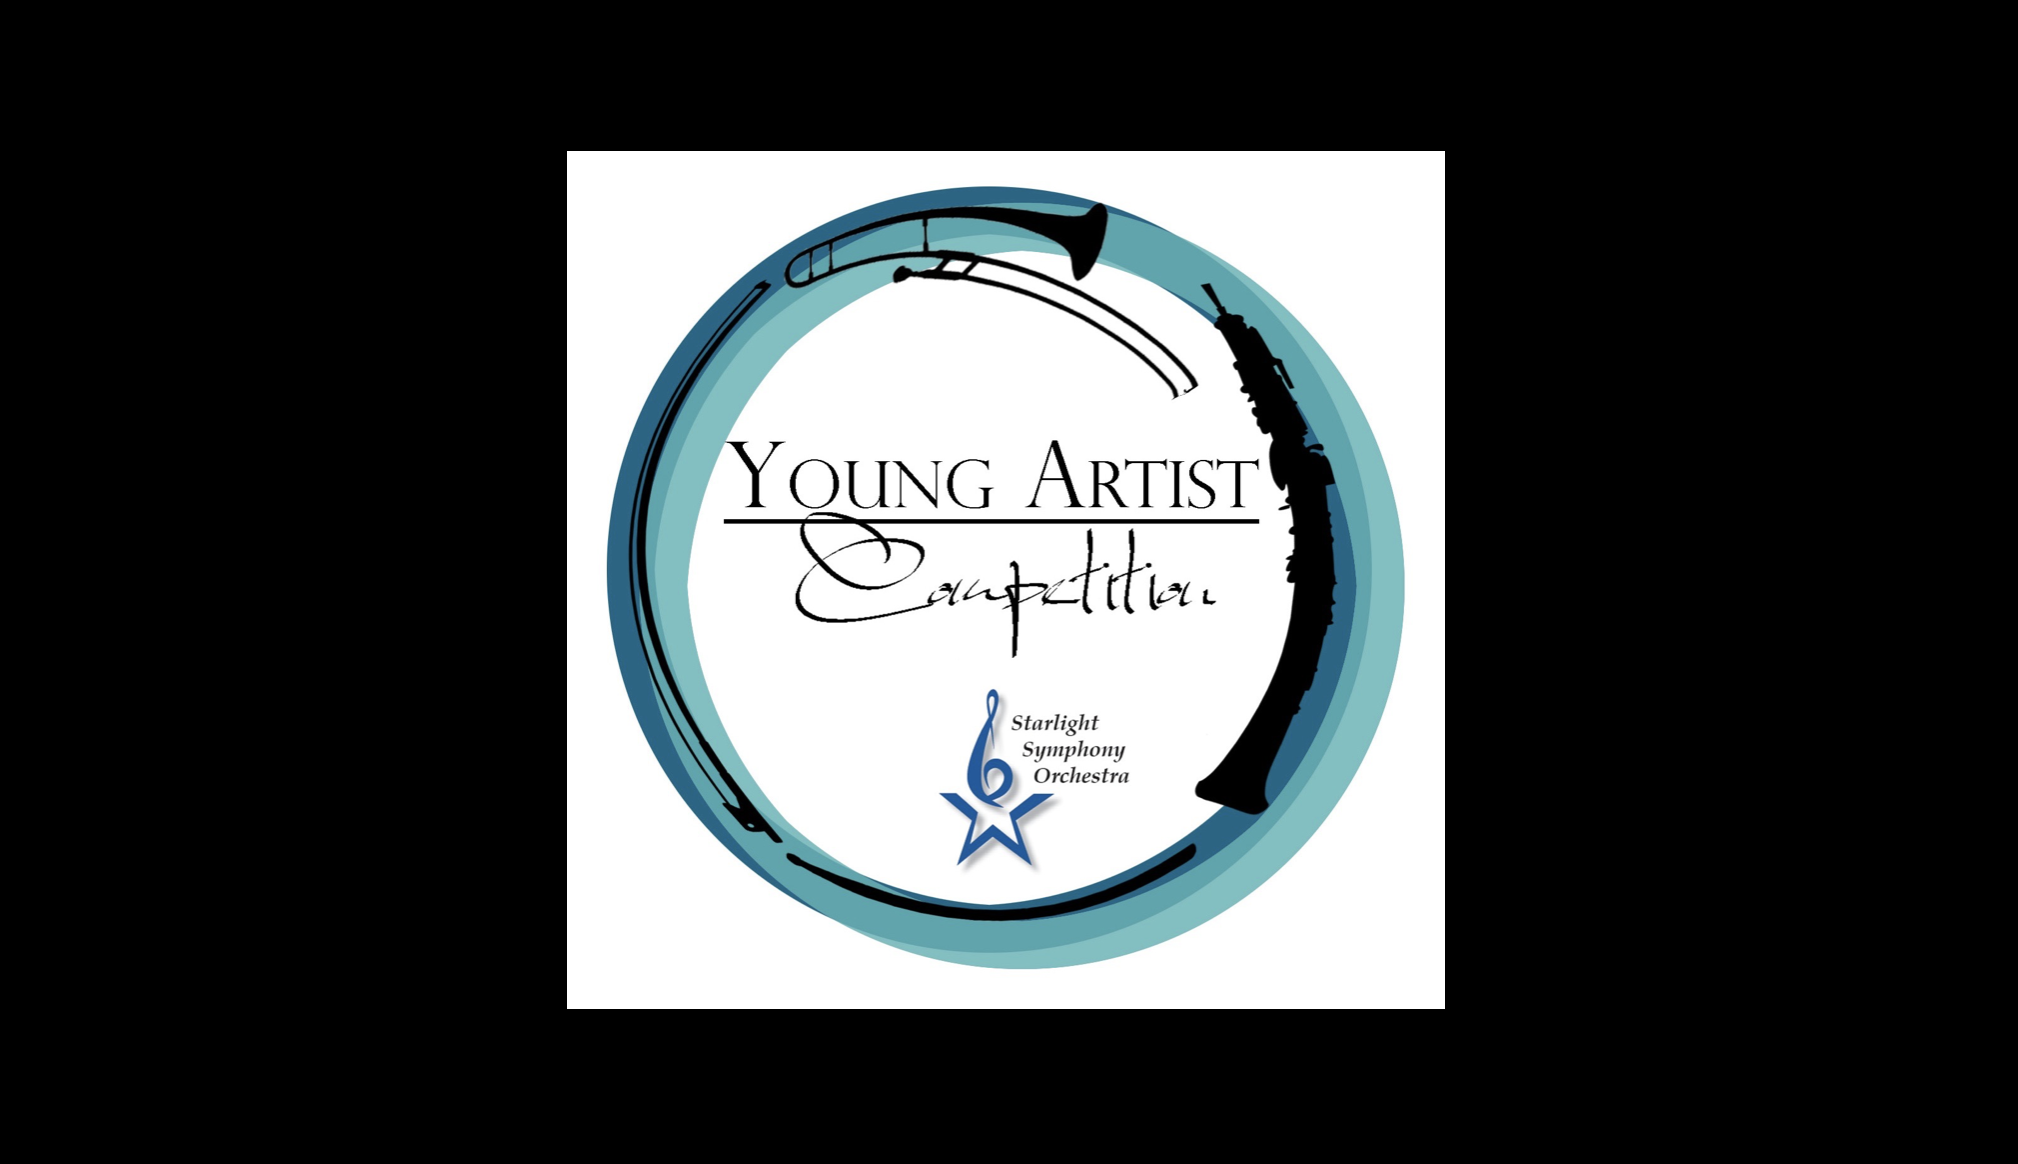 Young Artist Festival | Starlight Symphony Orchestra